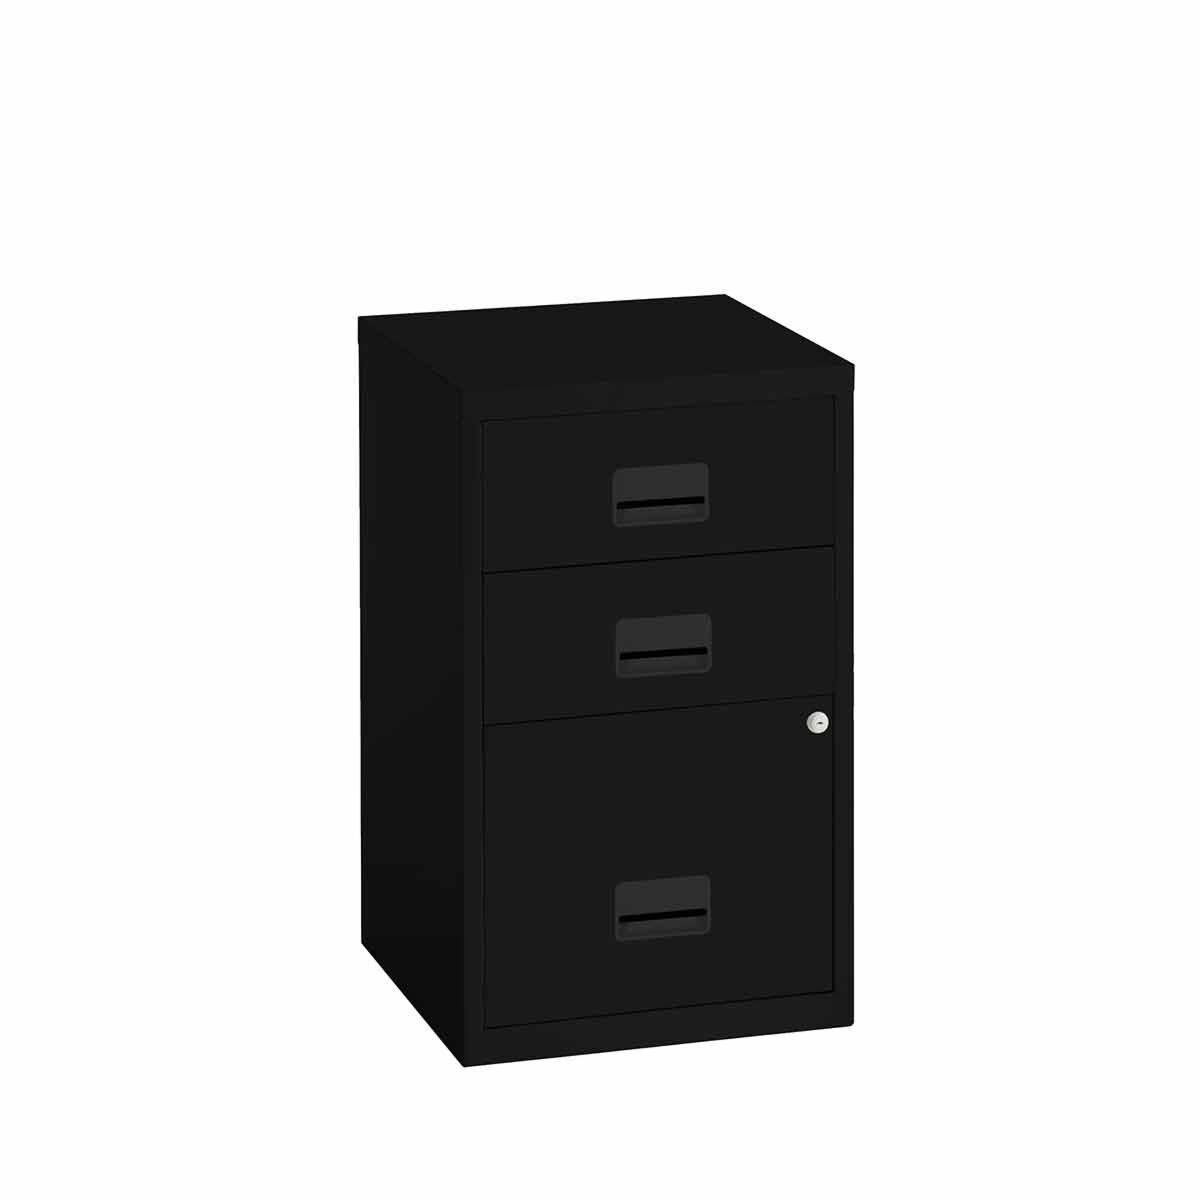 Pierre Henry 3 Drawer Combi Filing Cabinet A4 Black